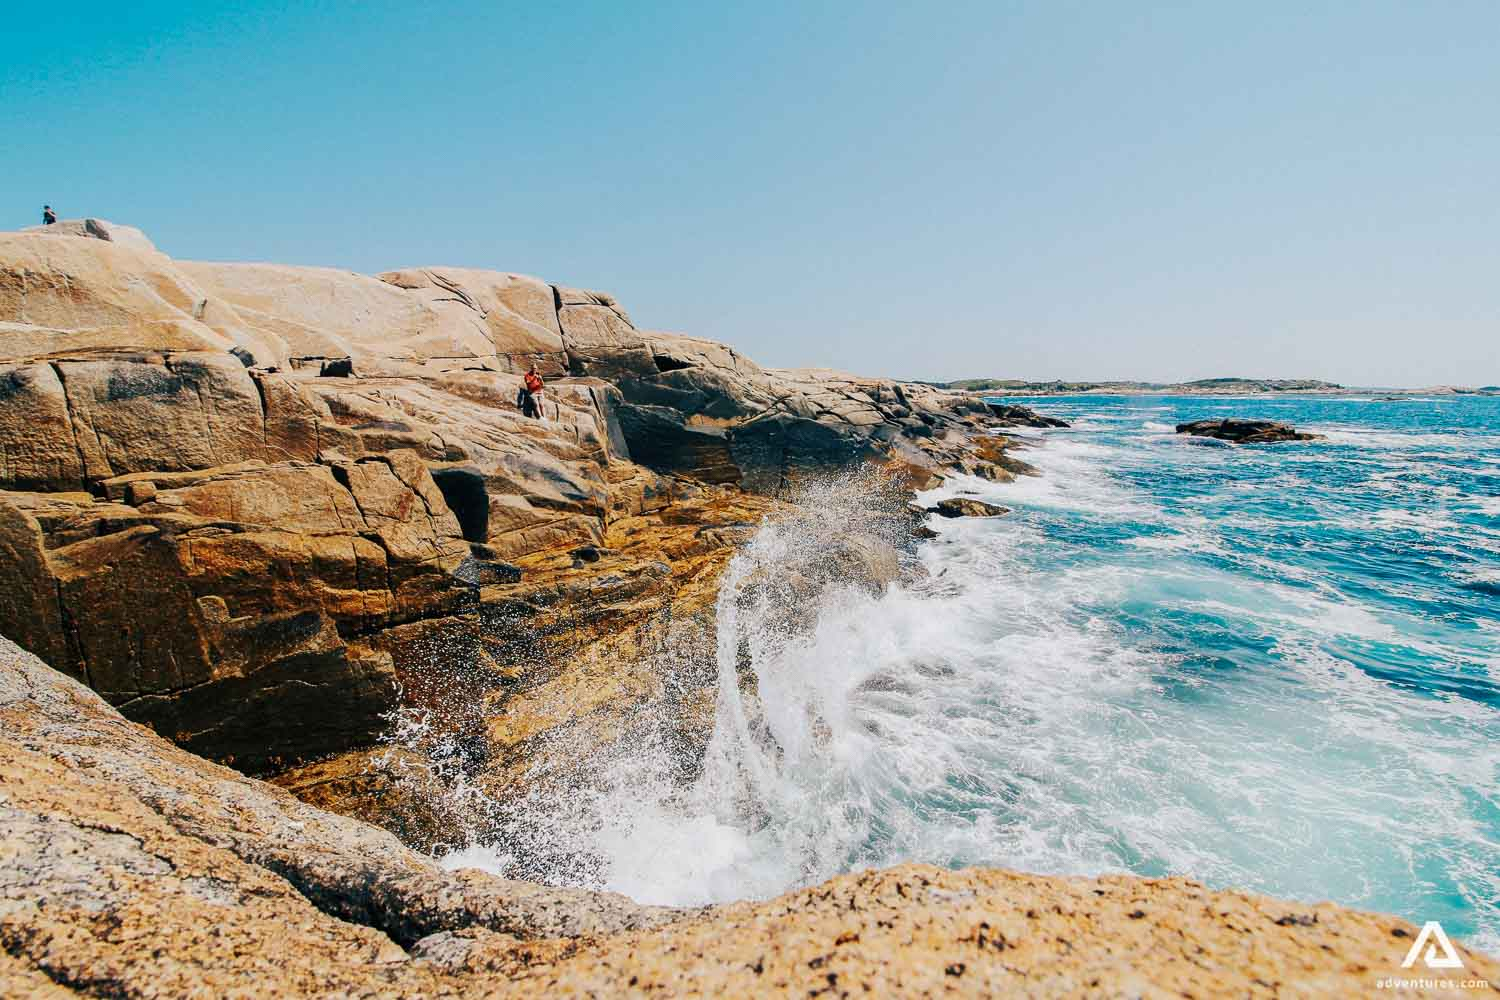 Waves crash into the cliff